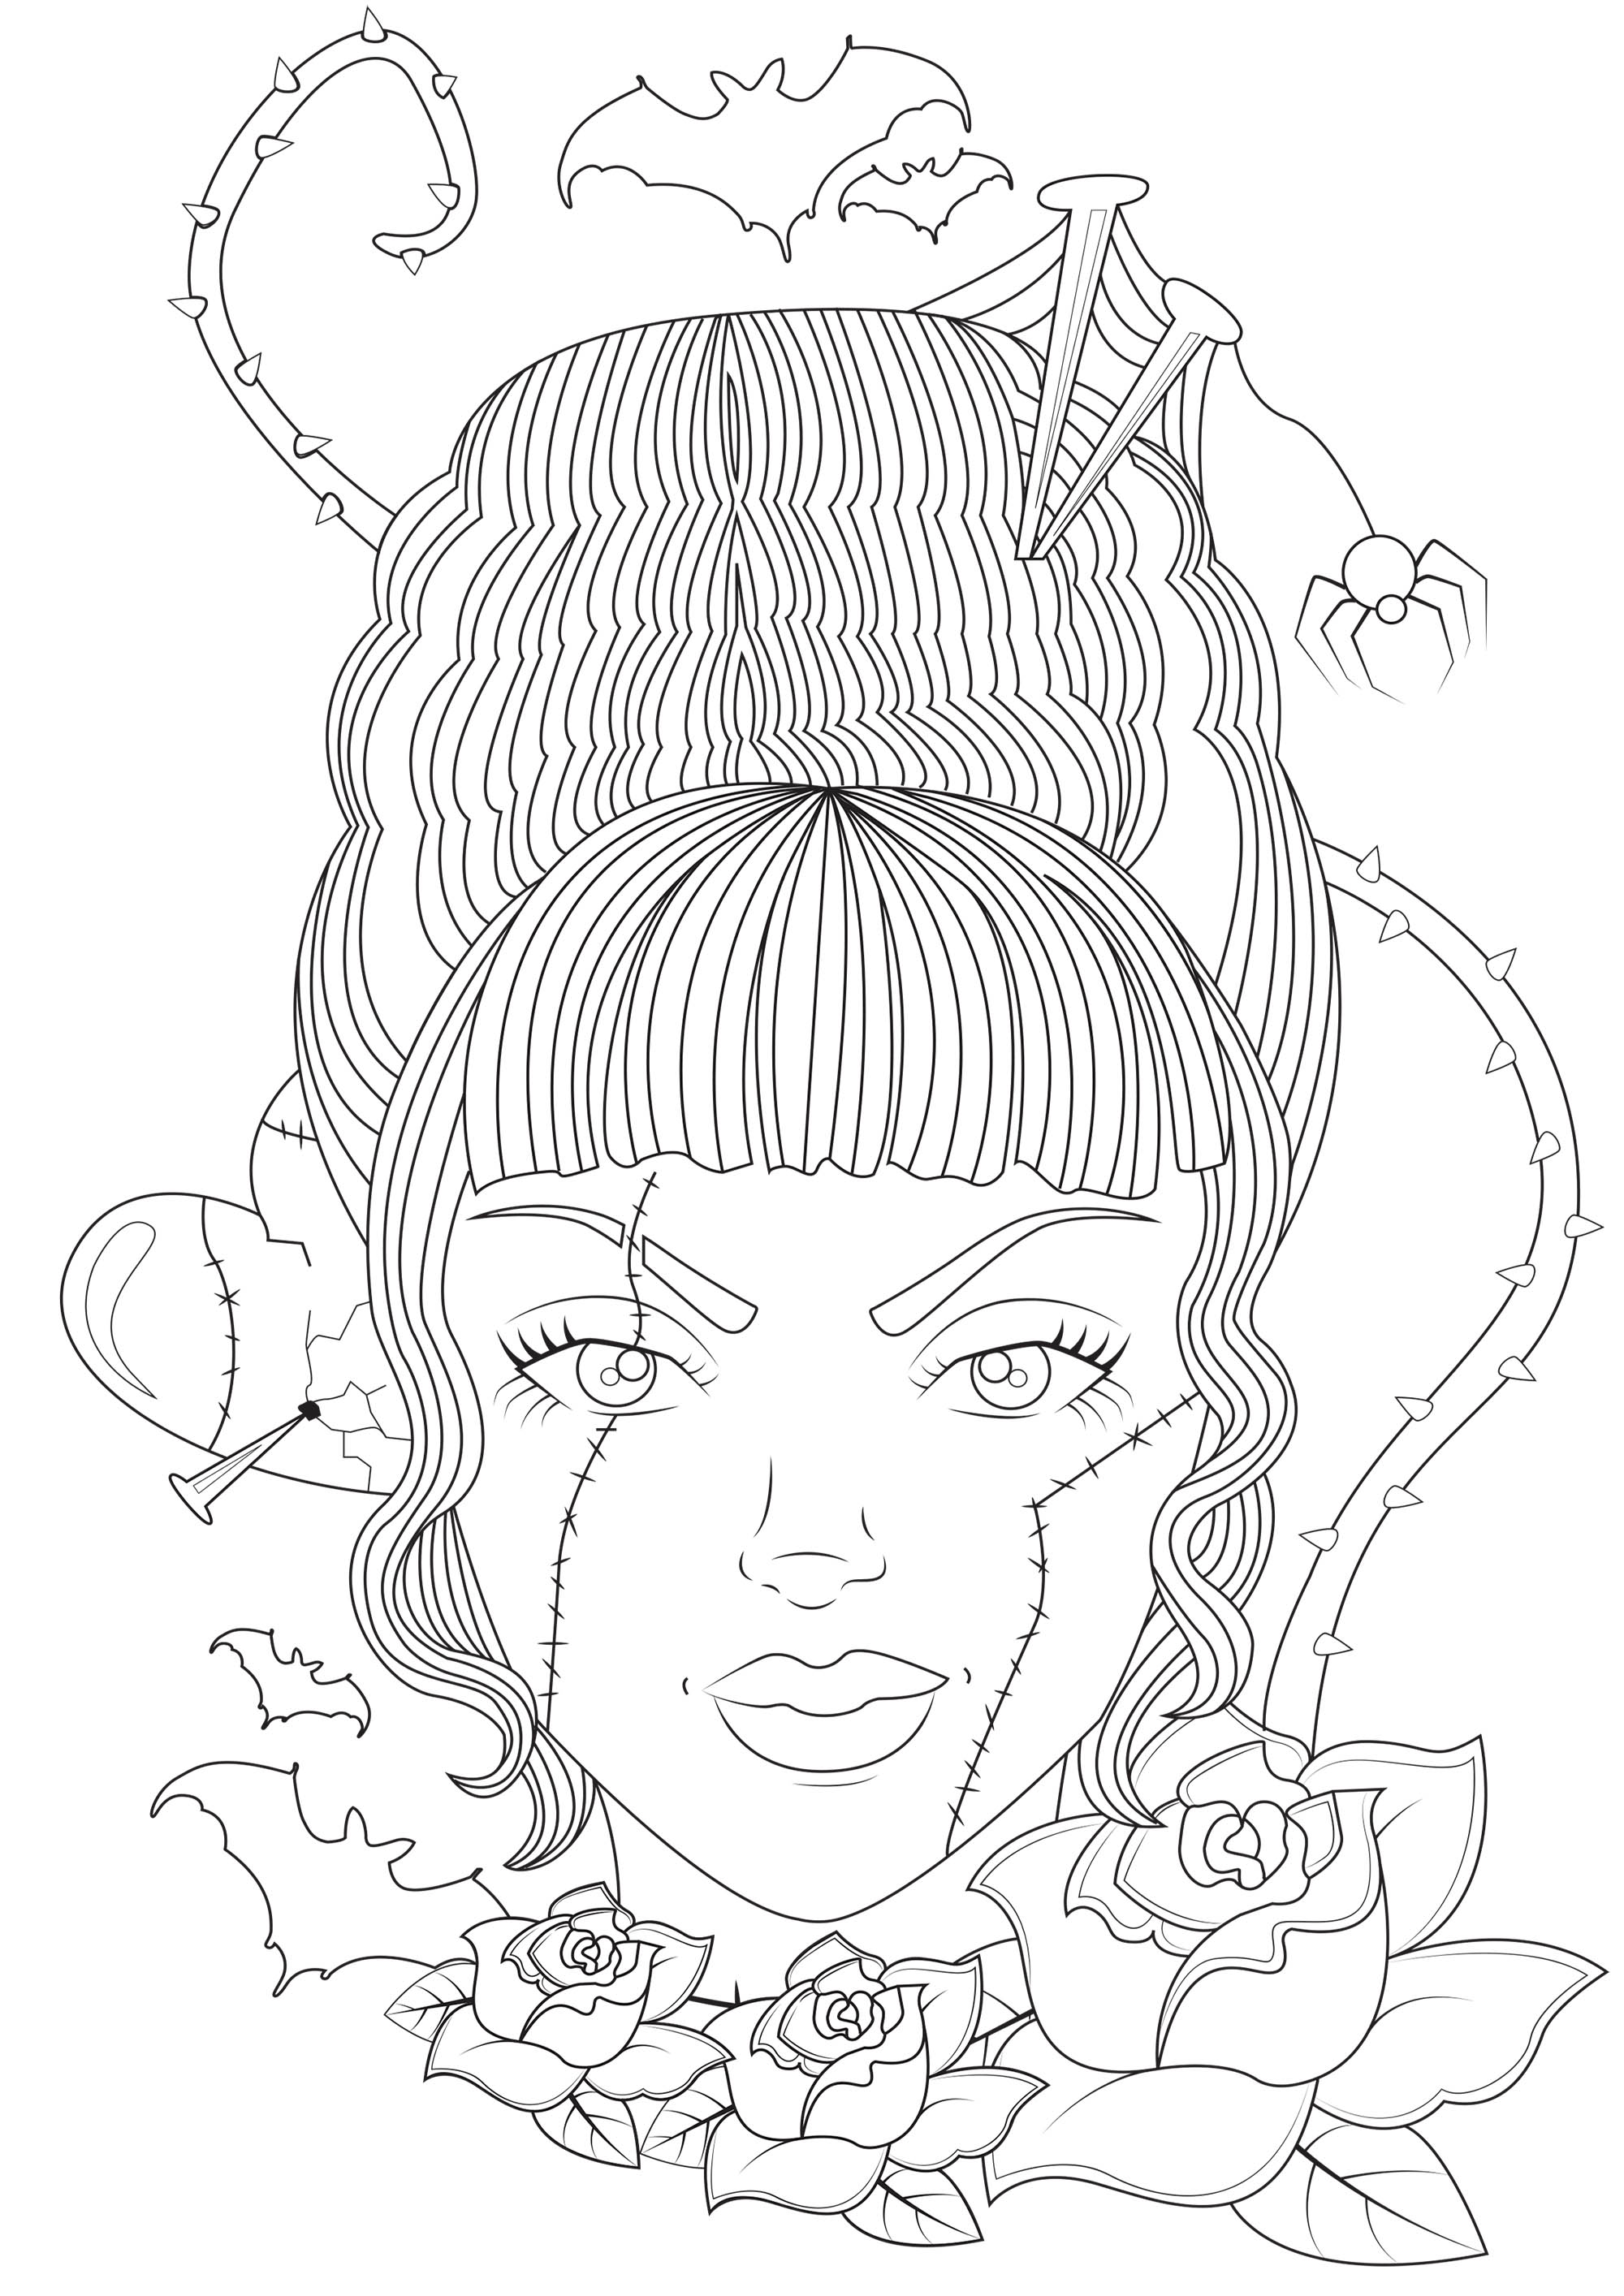 Bride of frankenstein - Halloween Adult Coloring Pages